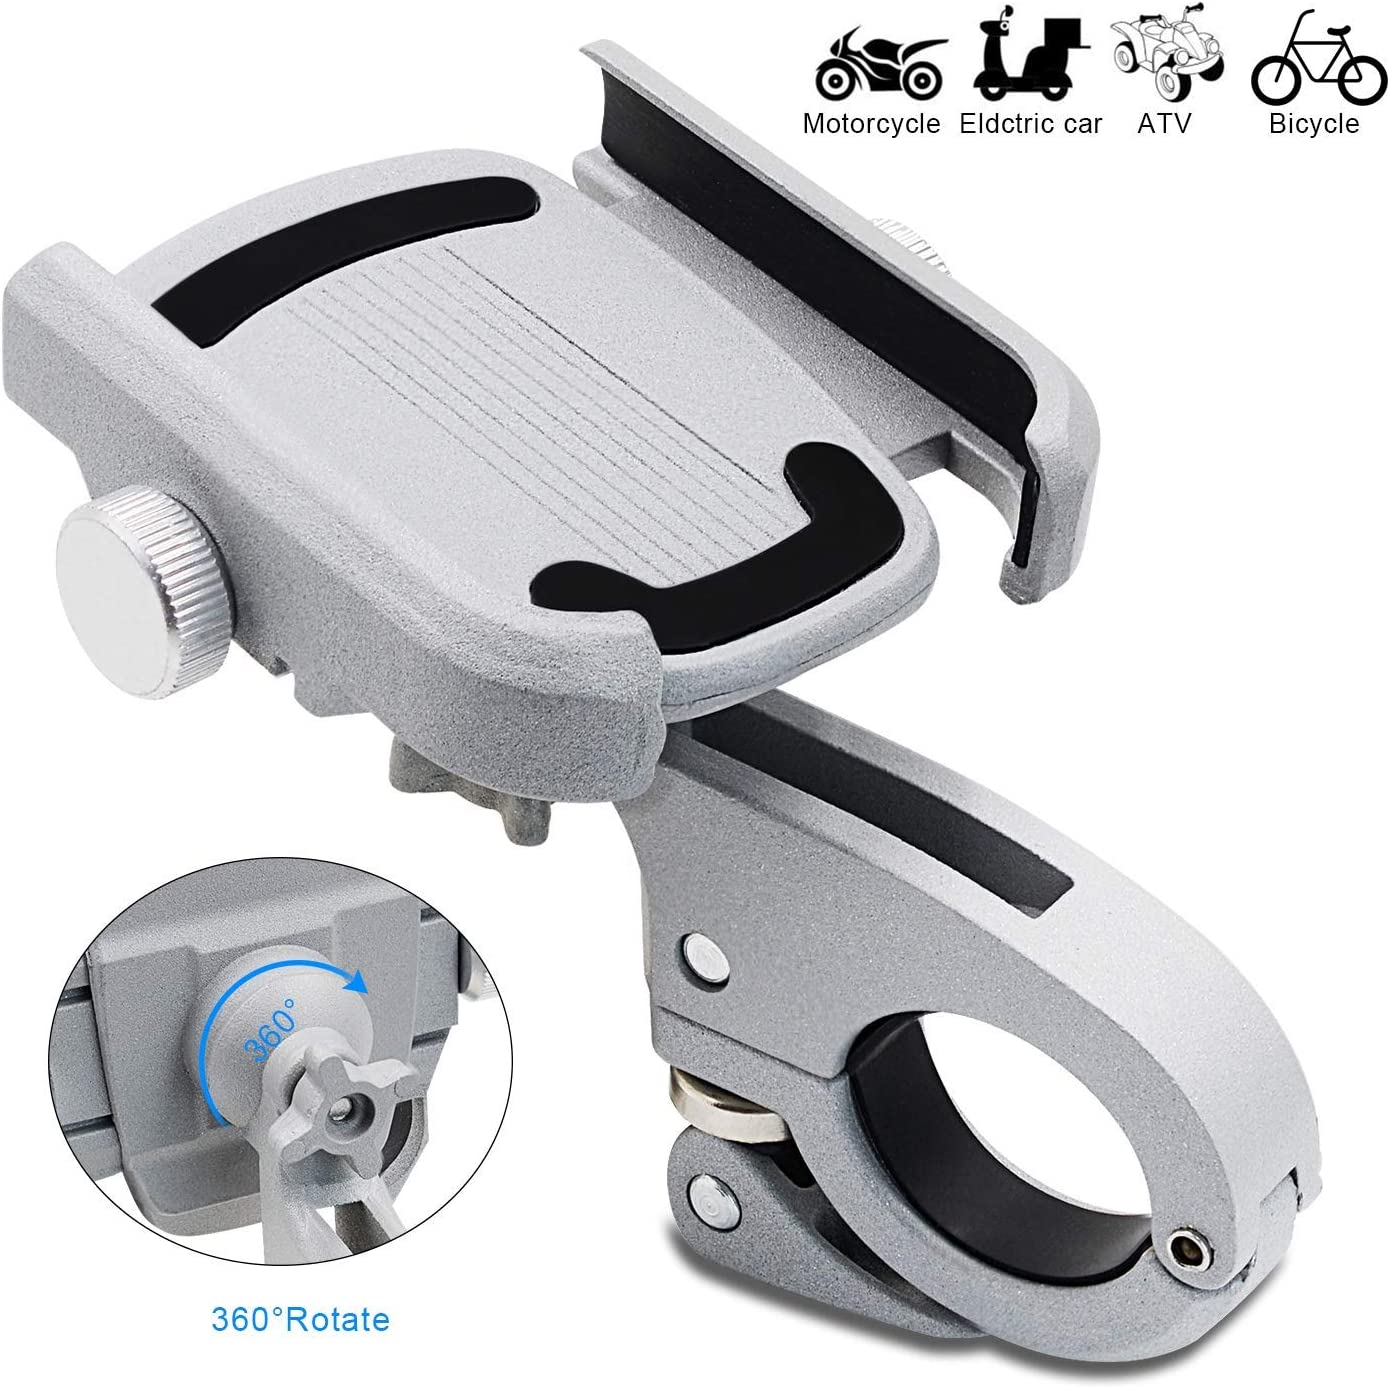 Bicycle Aluminum Alloy Mobile Phone Holder Bracket For Motorcycle Bike Bicycle